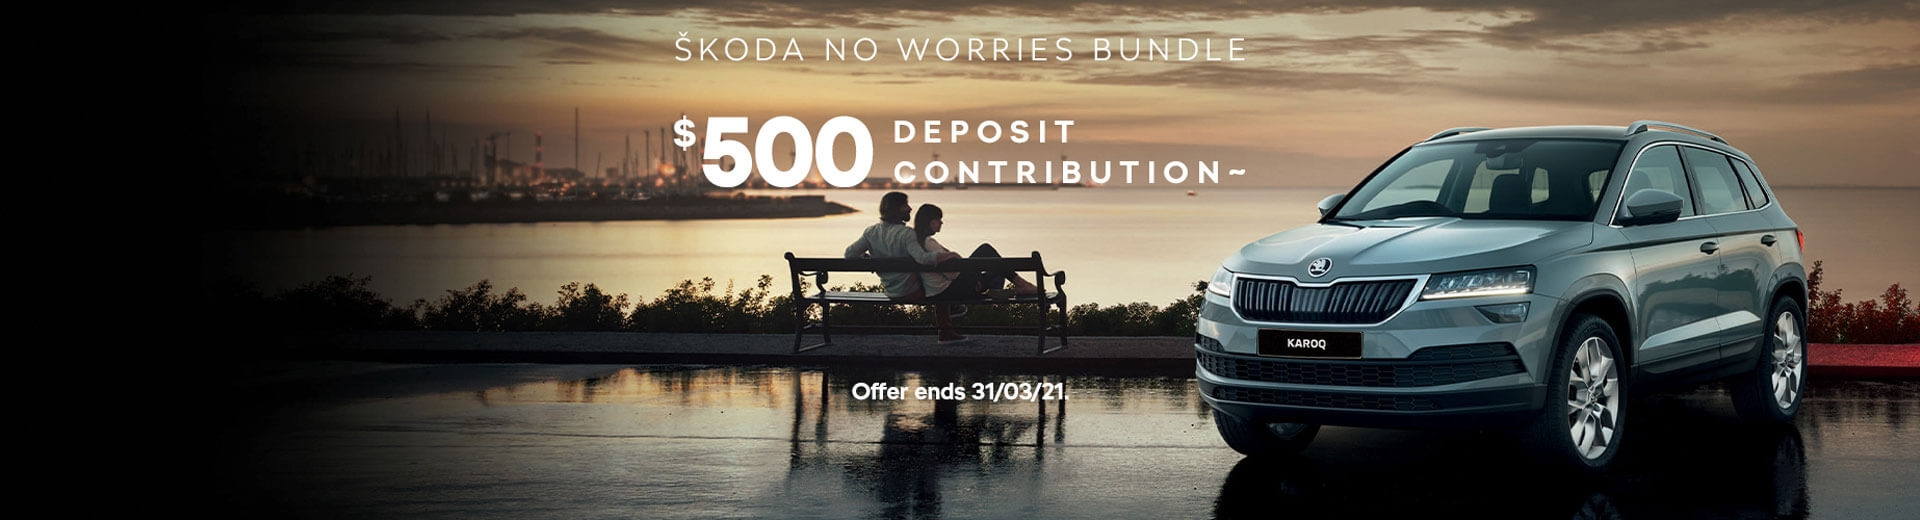 ŠKODA No Worries Bundle